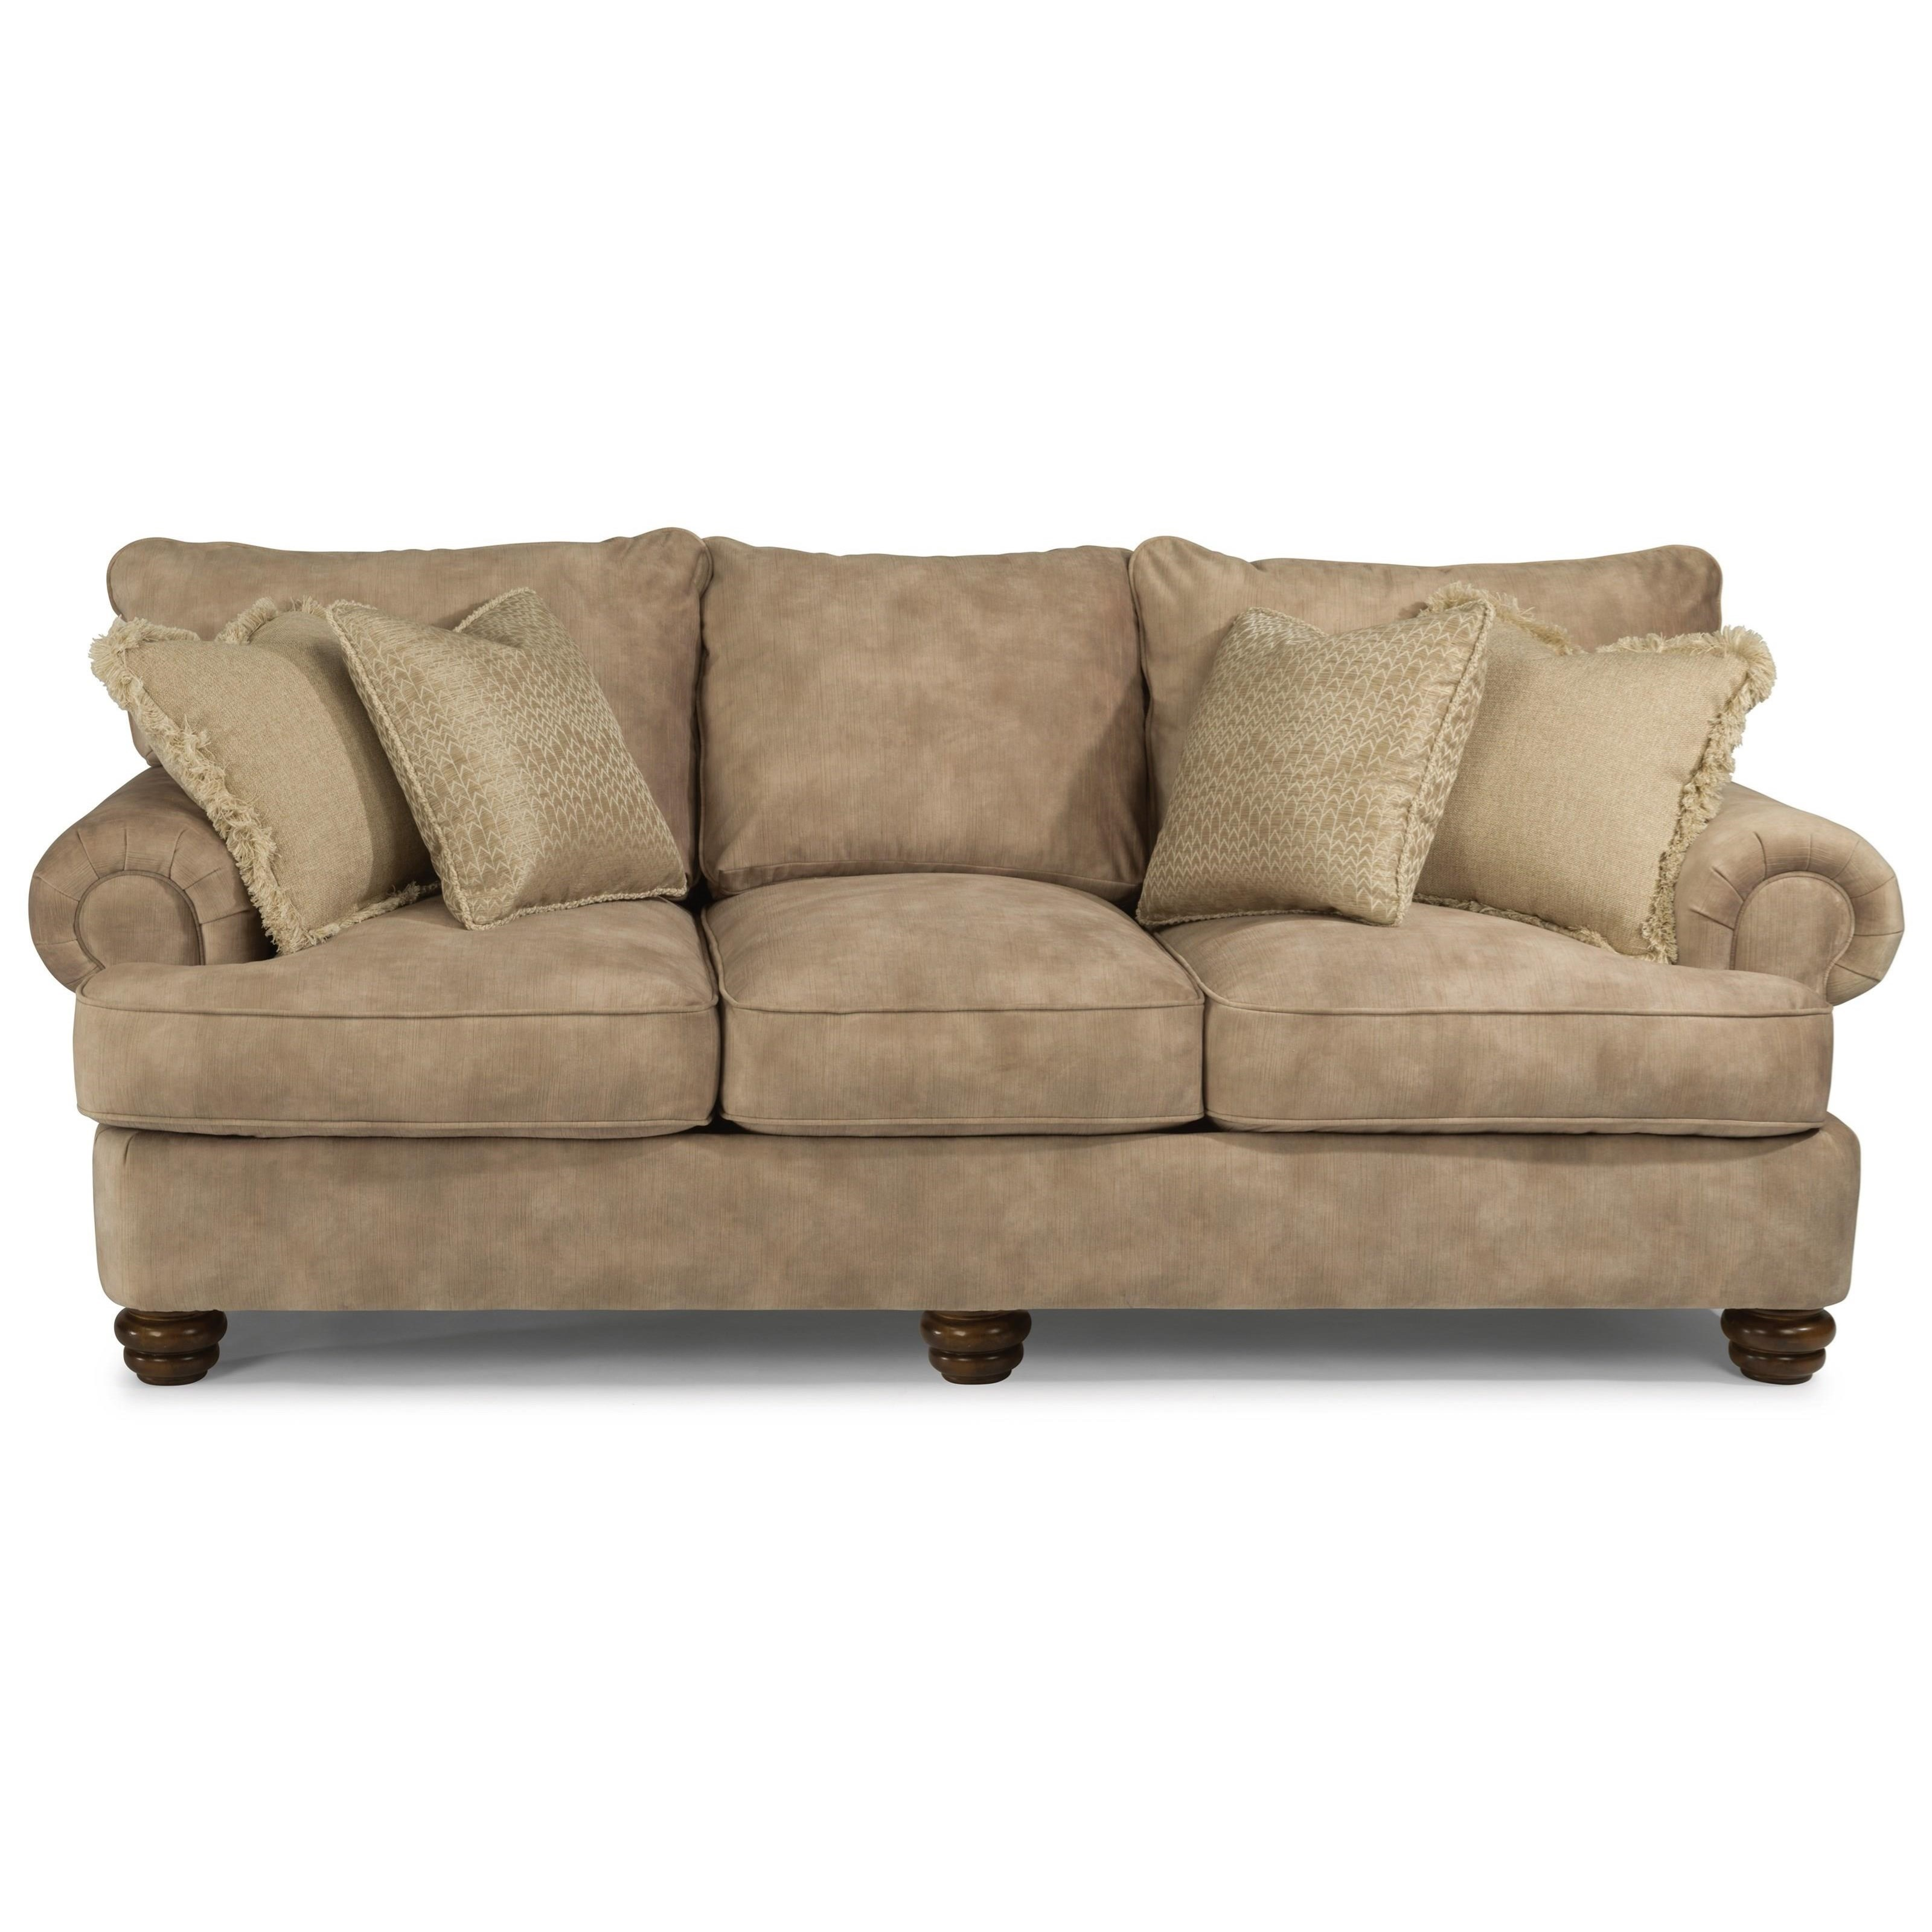 Flexsteel Providence Traditional Sofa With Bun Feet | Colderu0027s Furniture  And Appliance | Sofas